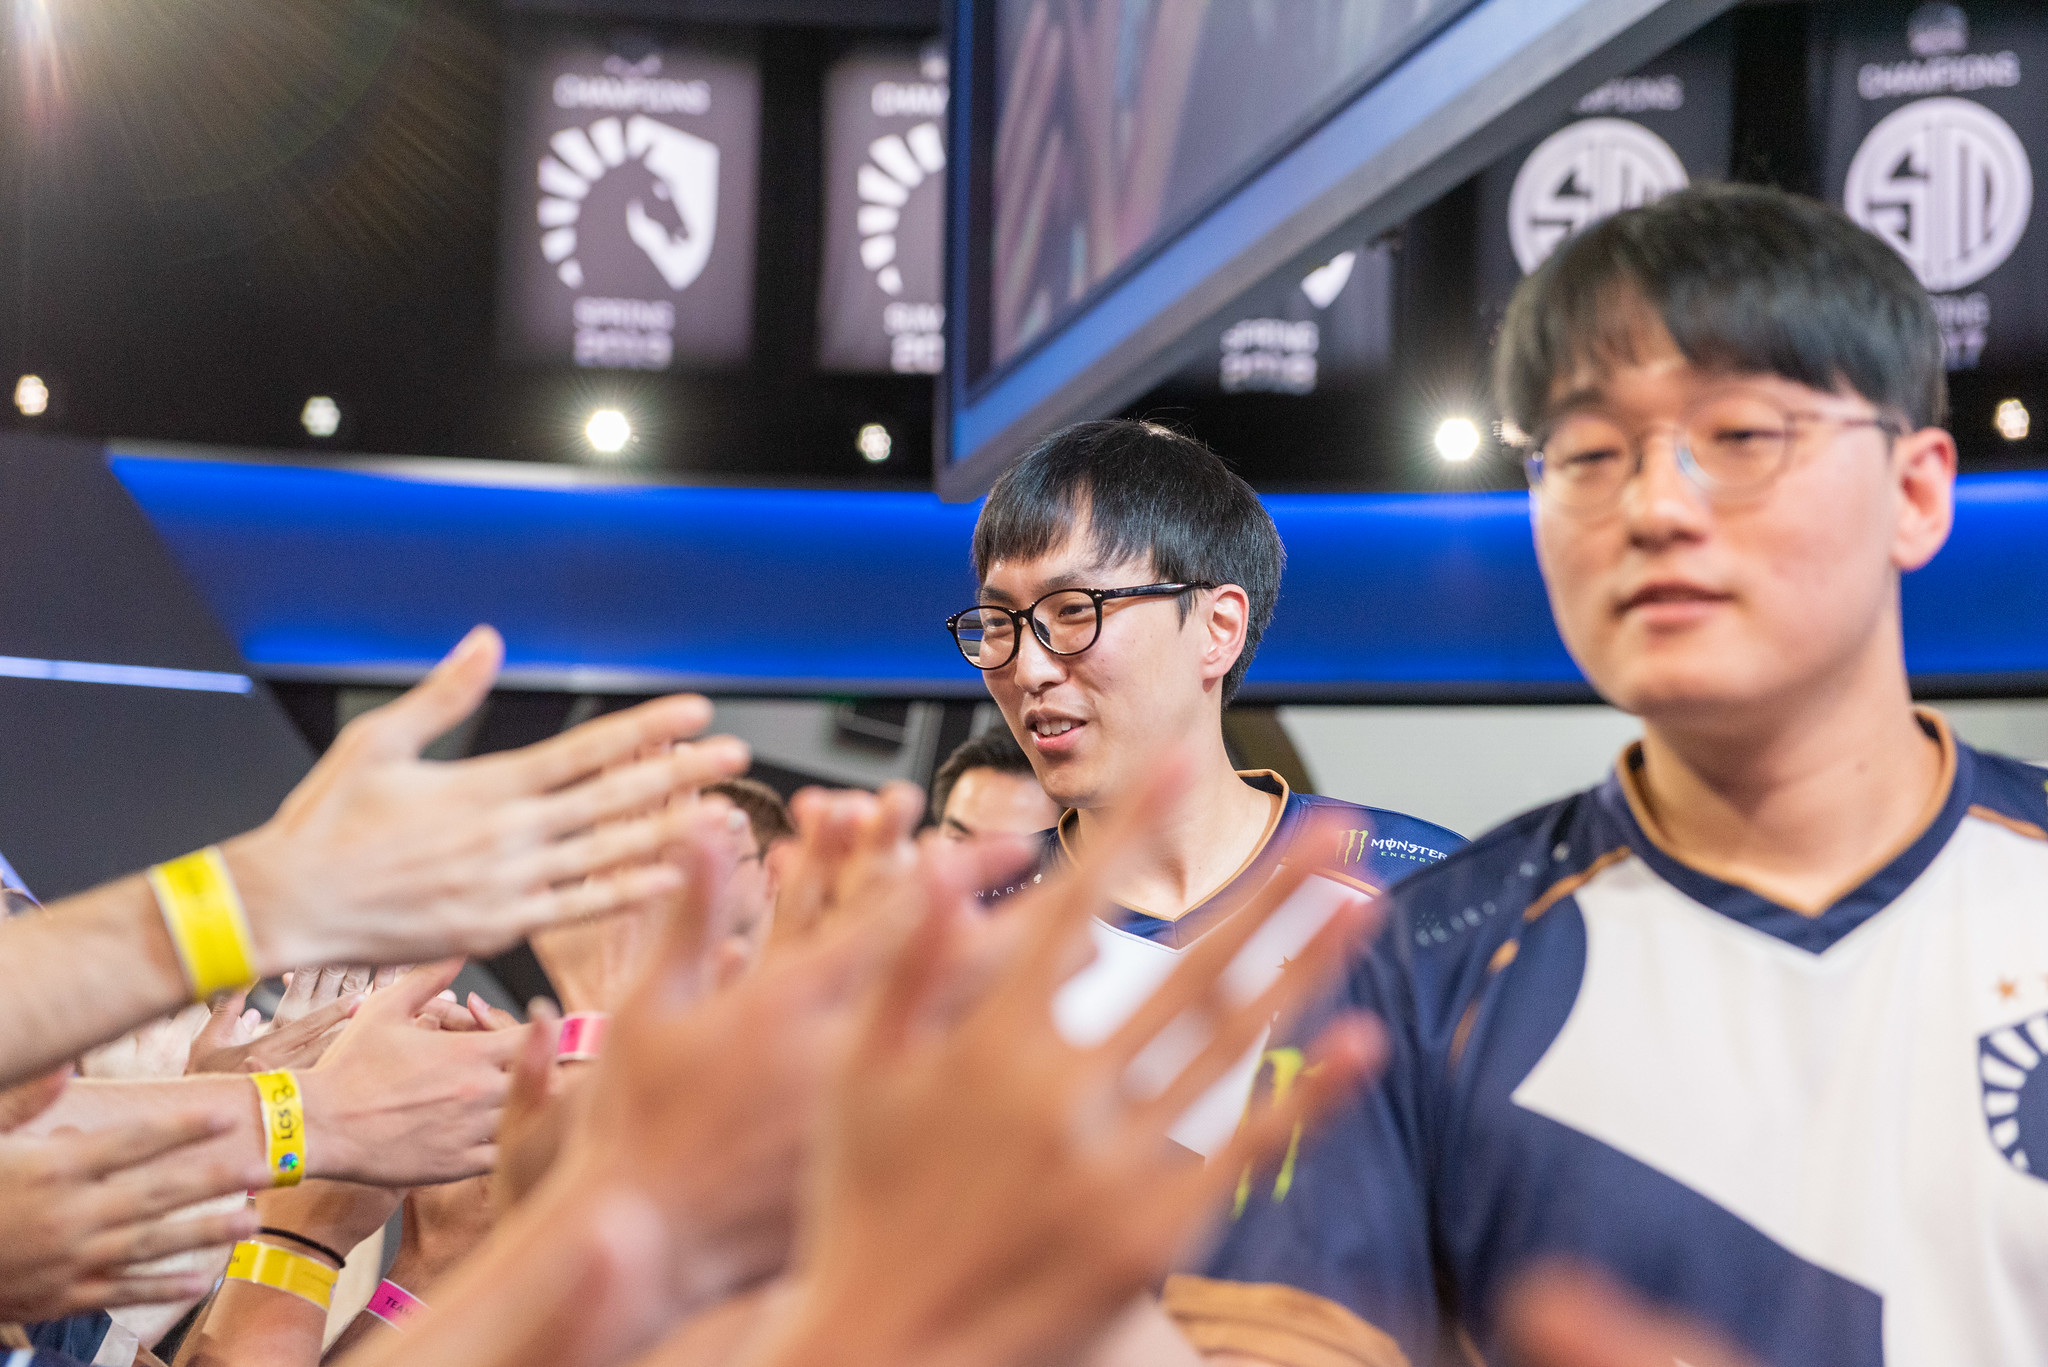 Team Liquid qualify for Worlds after semifinal win over Clutch Gaming